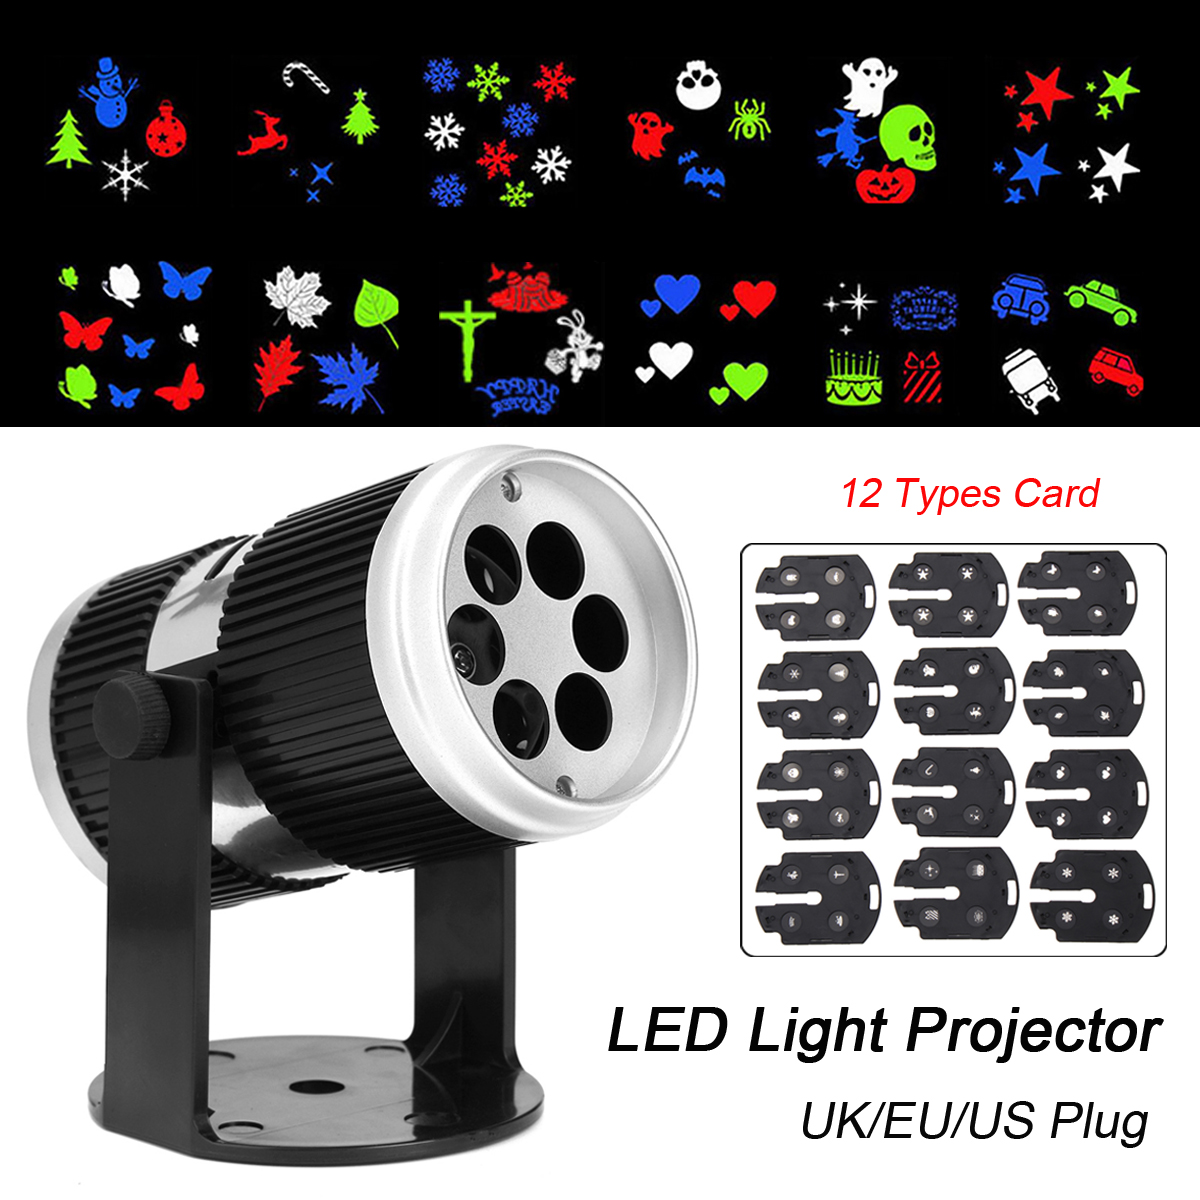 Christmas Projector Light Lamp Snow Projector Indoor Outdoor Landscape Moving LED Home Party Lamp Christmas + 12 Slides Holiday christmas led stage laser light 12 slides film projector lamp outdoor projector landscape light xmas party garden holiday